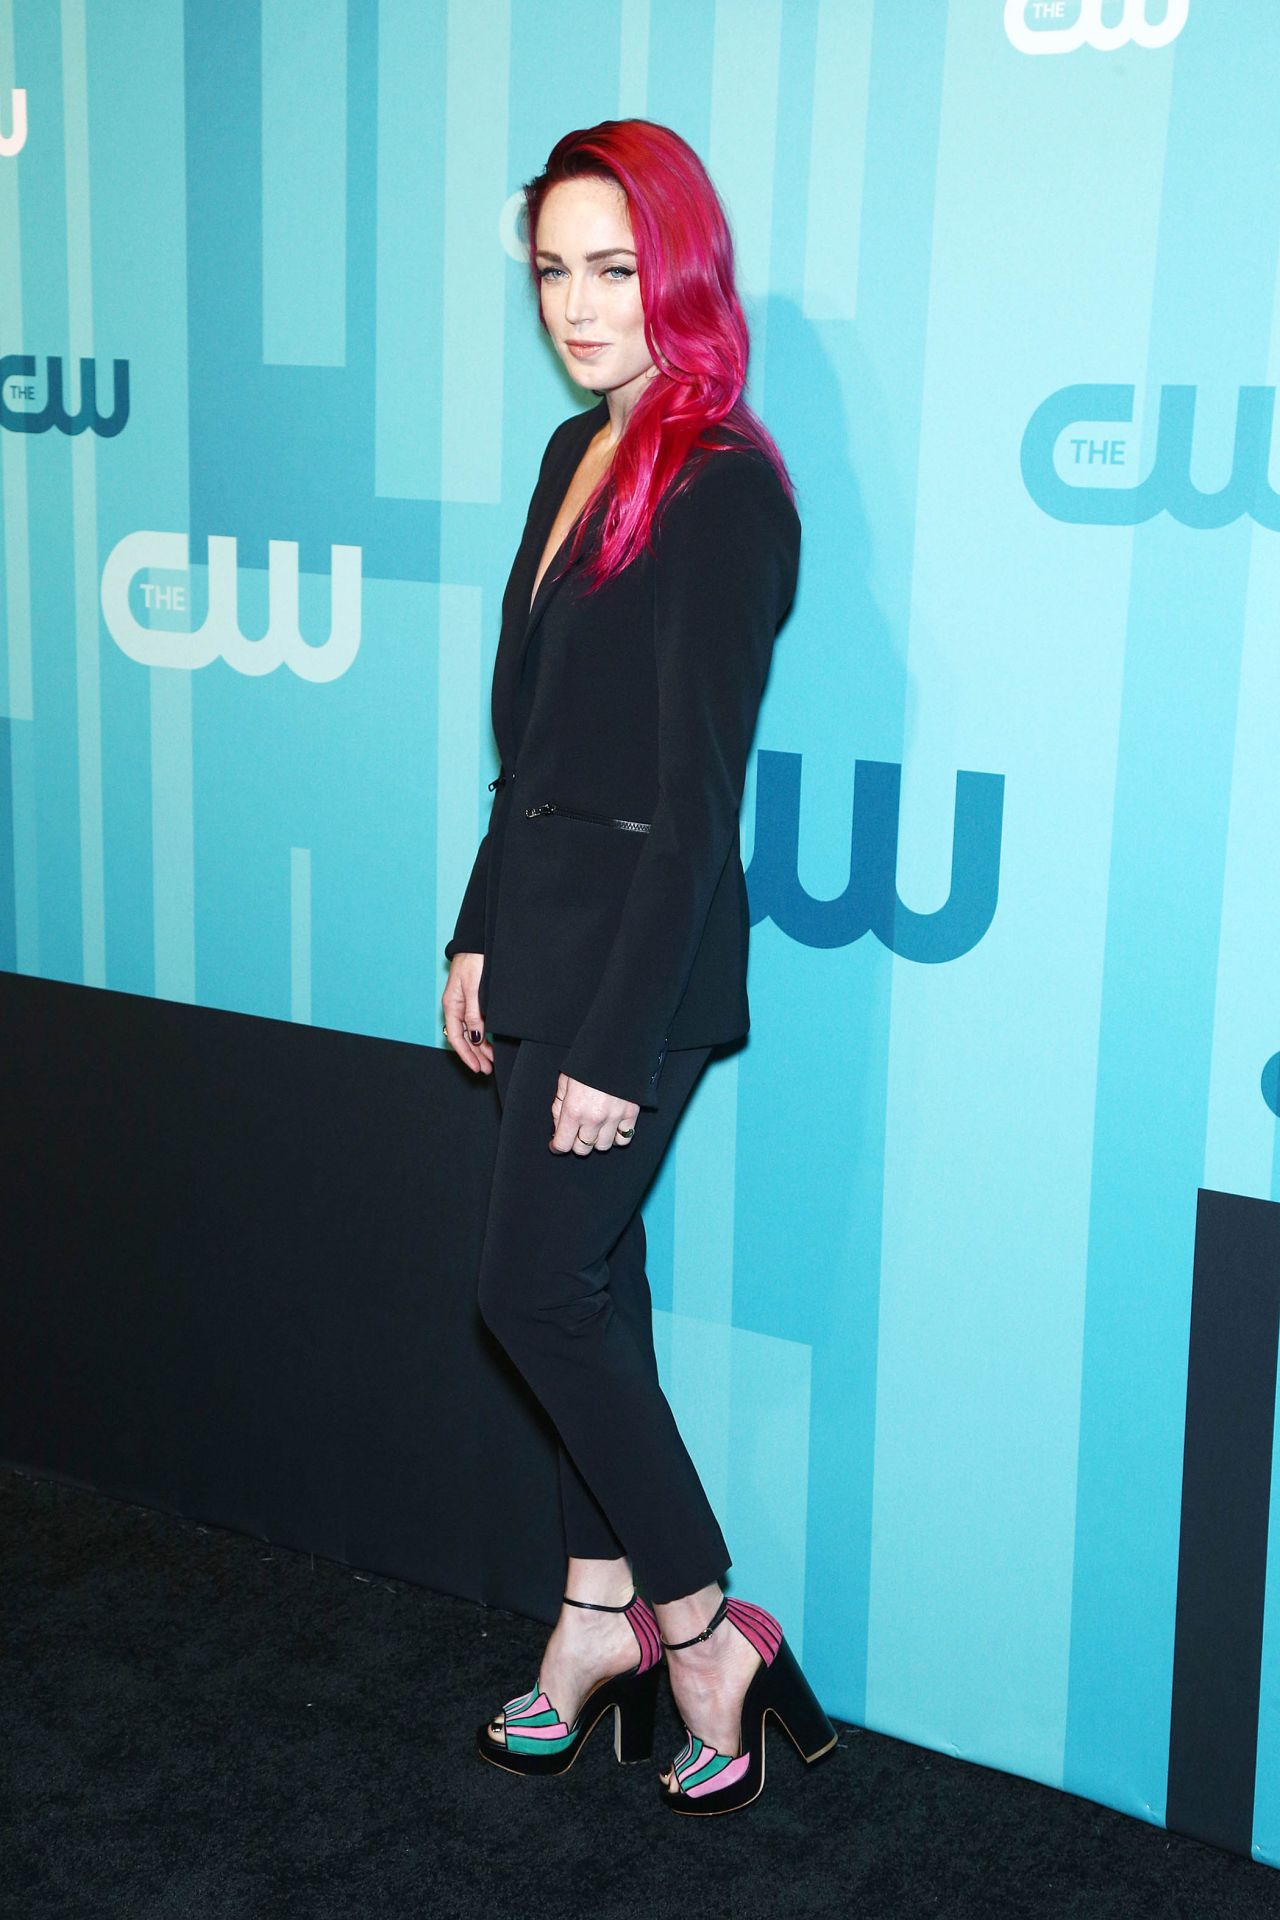 Caity Lotz attends The CW Networks New York 2015 Upfront